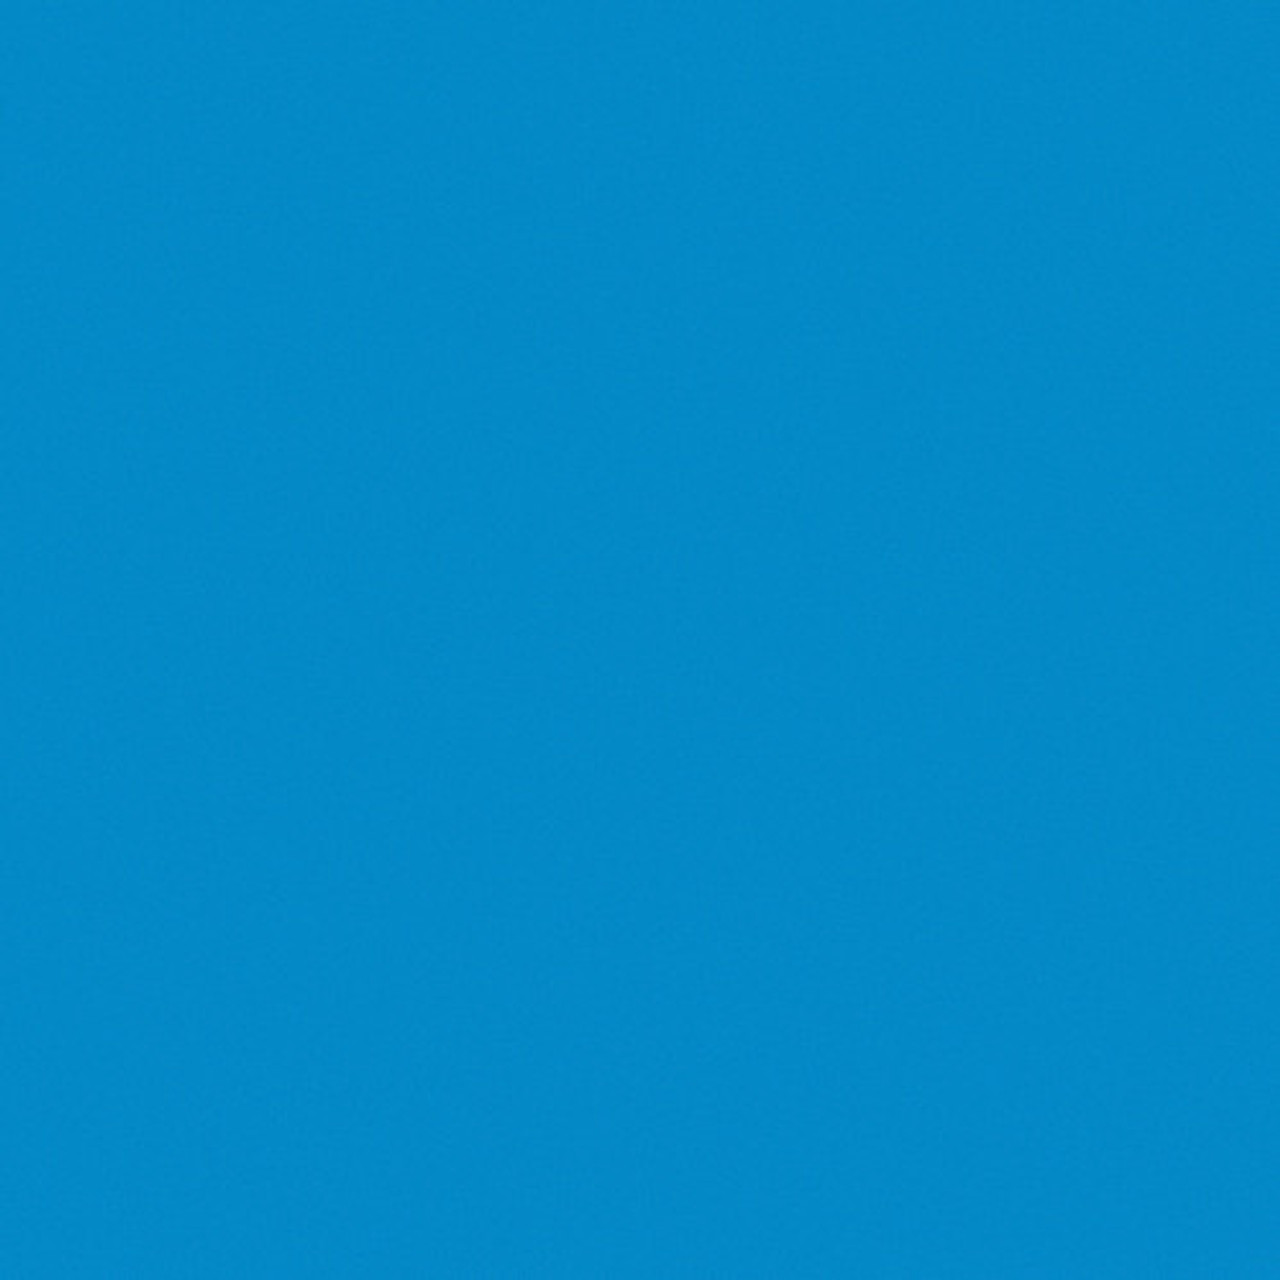 #0064 Rosco Gels Roscolux Light Steel Blue, 20x24""